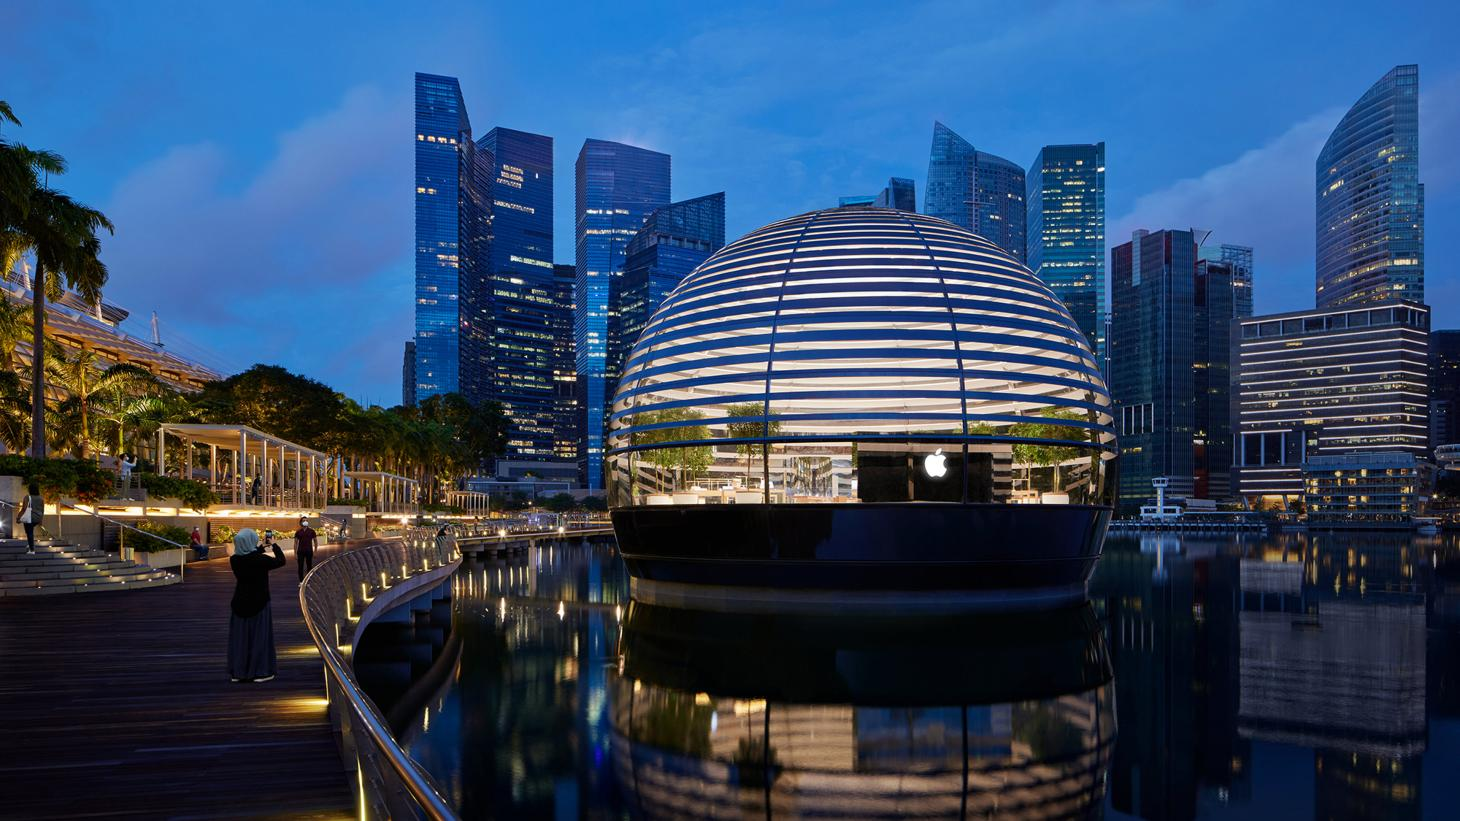 A moody exterior view of Apple Marina Bay Sands at night time